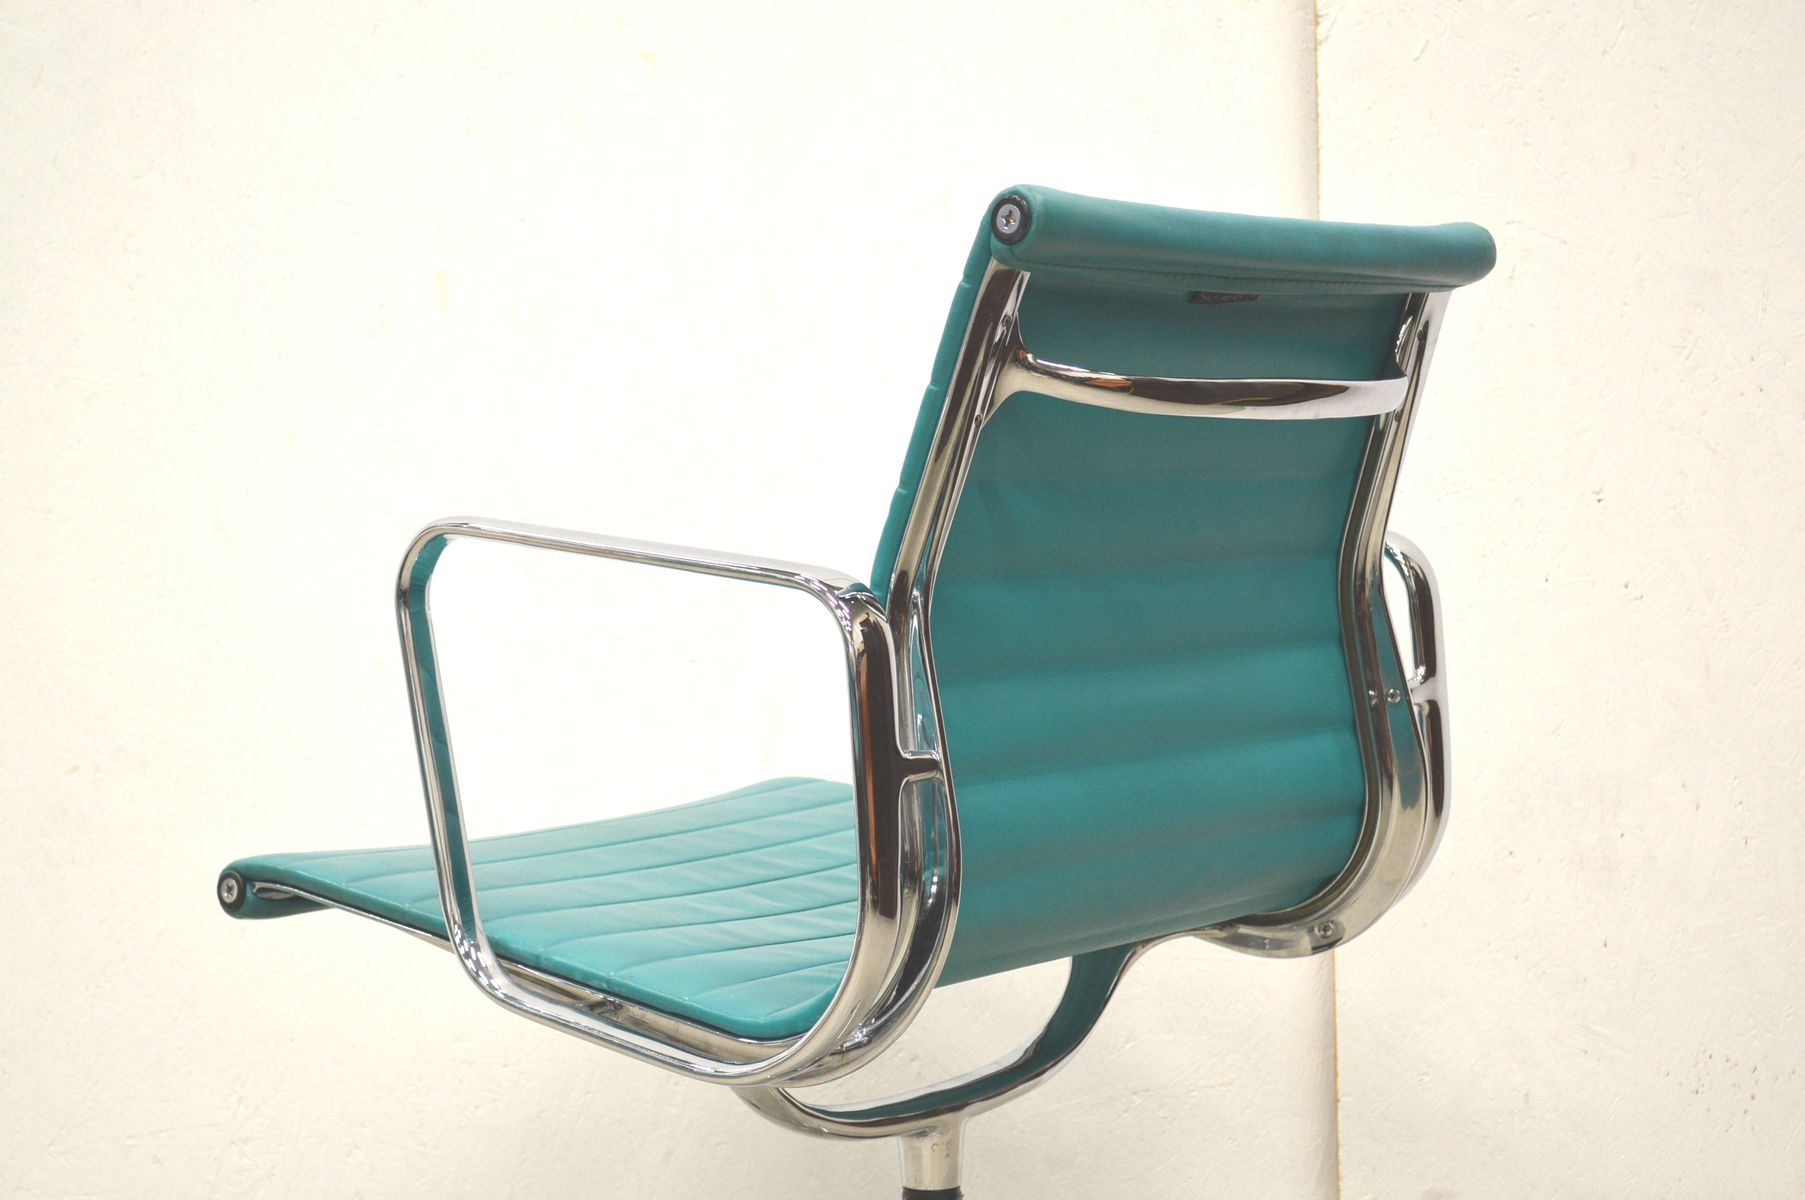 Turquoise EA108 Aluminum fice Chairs by Charles & Ray Eames for